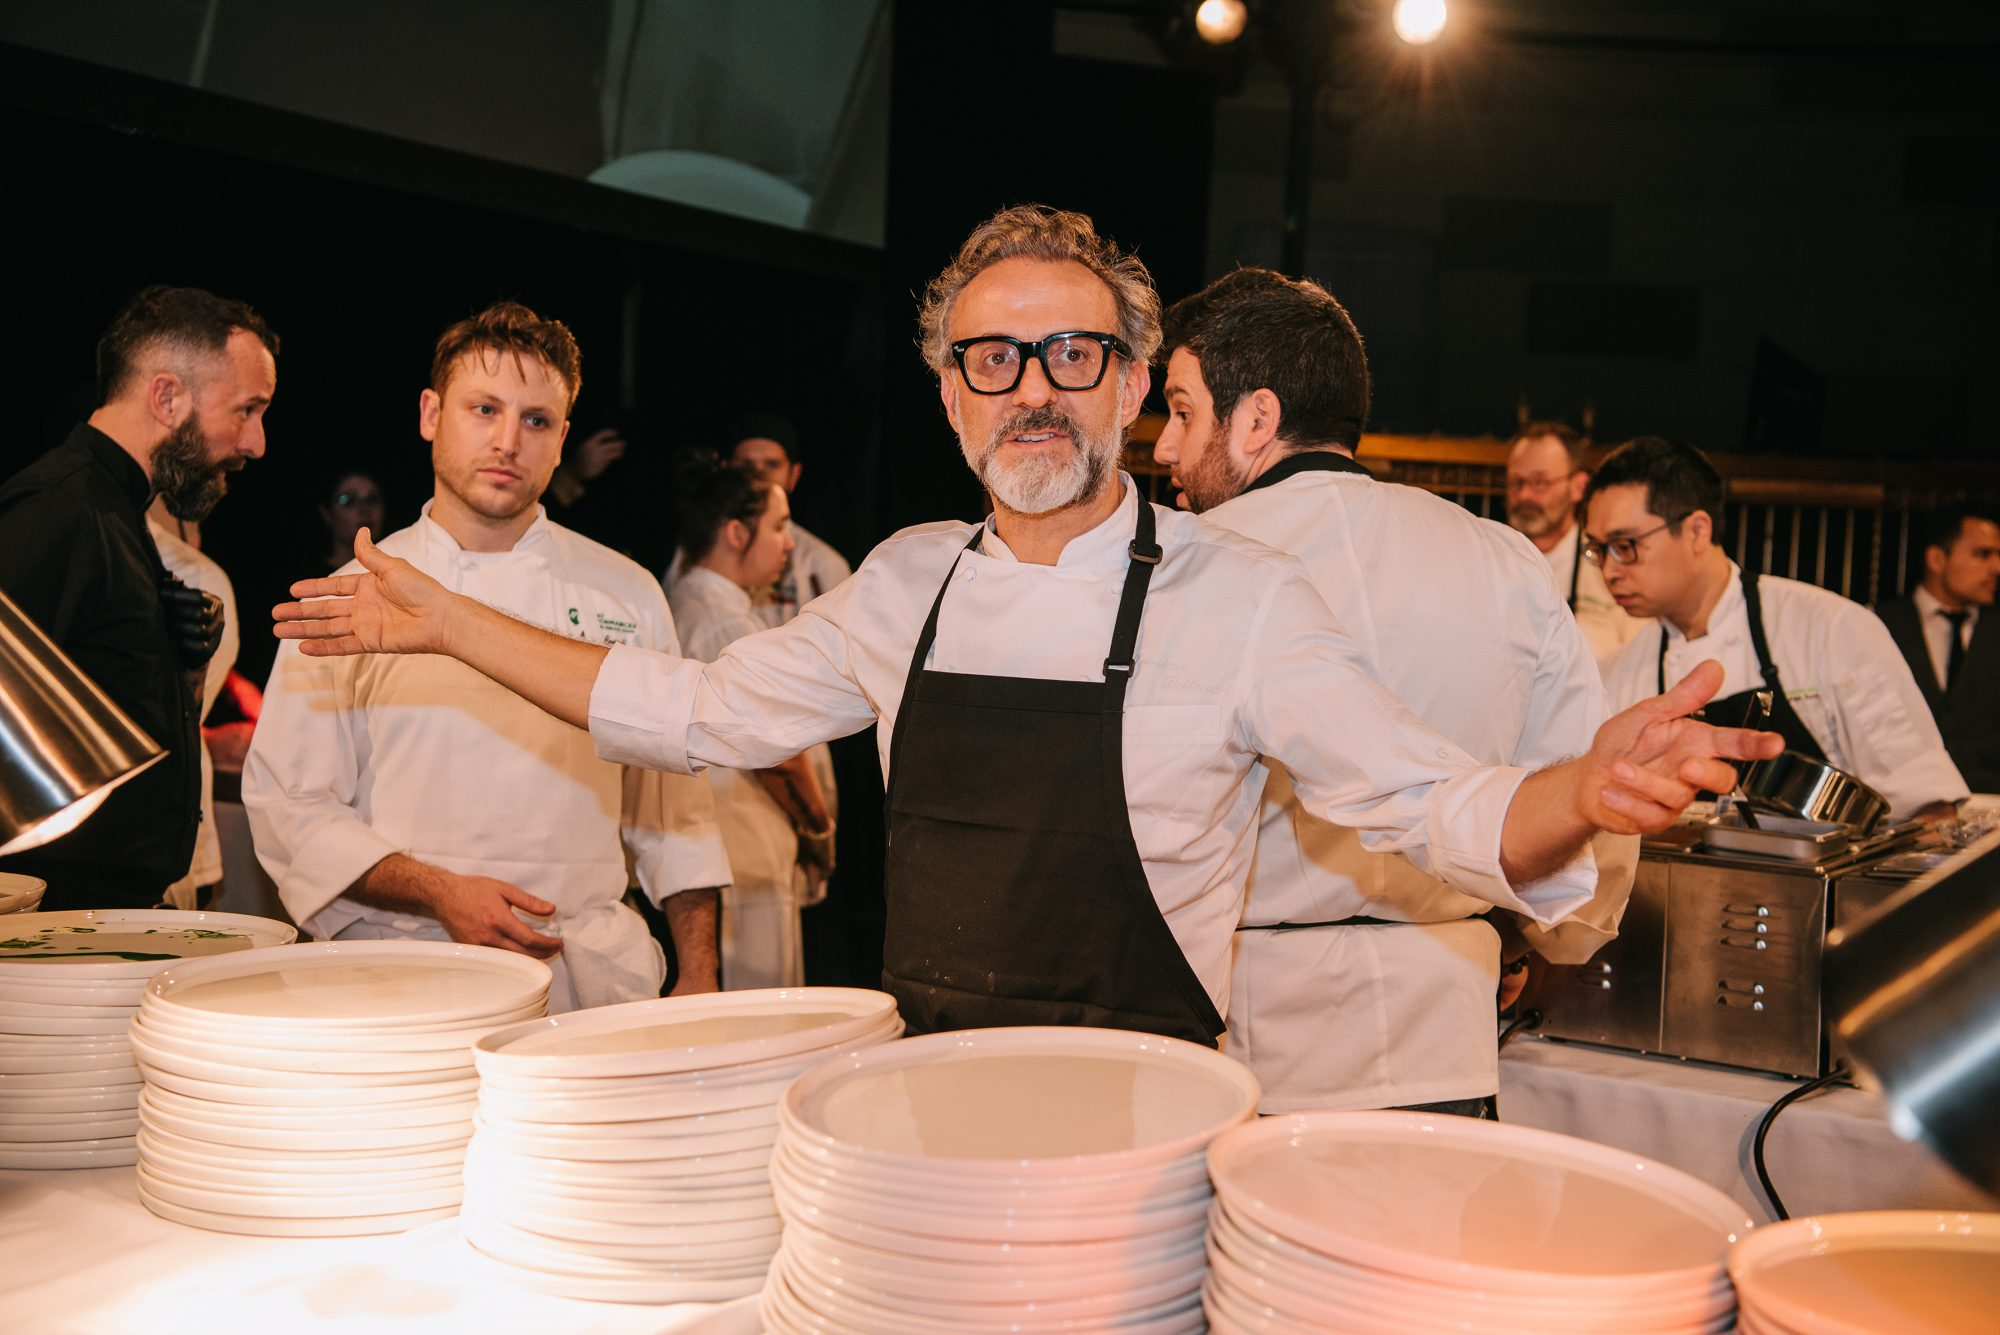 Mauro Colagreco and Massimo Bottura Team Up for Bucket List Dinner in Miami